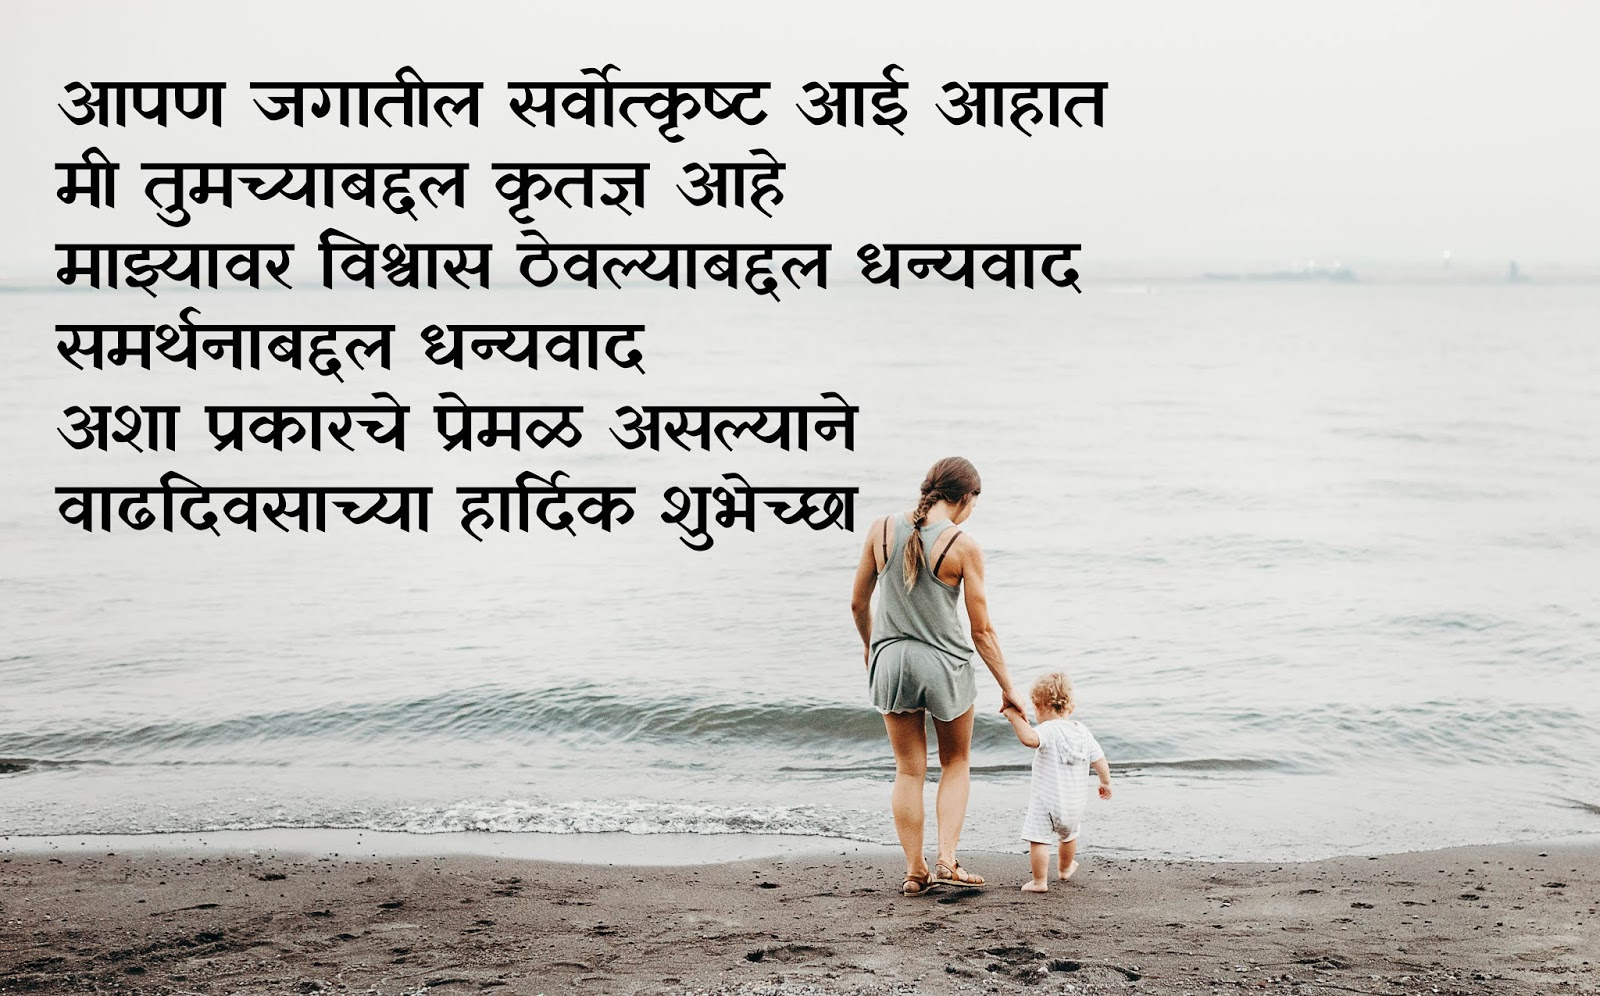 Happy Birthday Wishes For Mother In Marathi À¤µ À¤¢à¤¦ À¤µà¤¸ À¤š À¤¯ À¤¶ À¤­ À¤š À¤¯